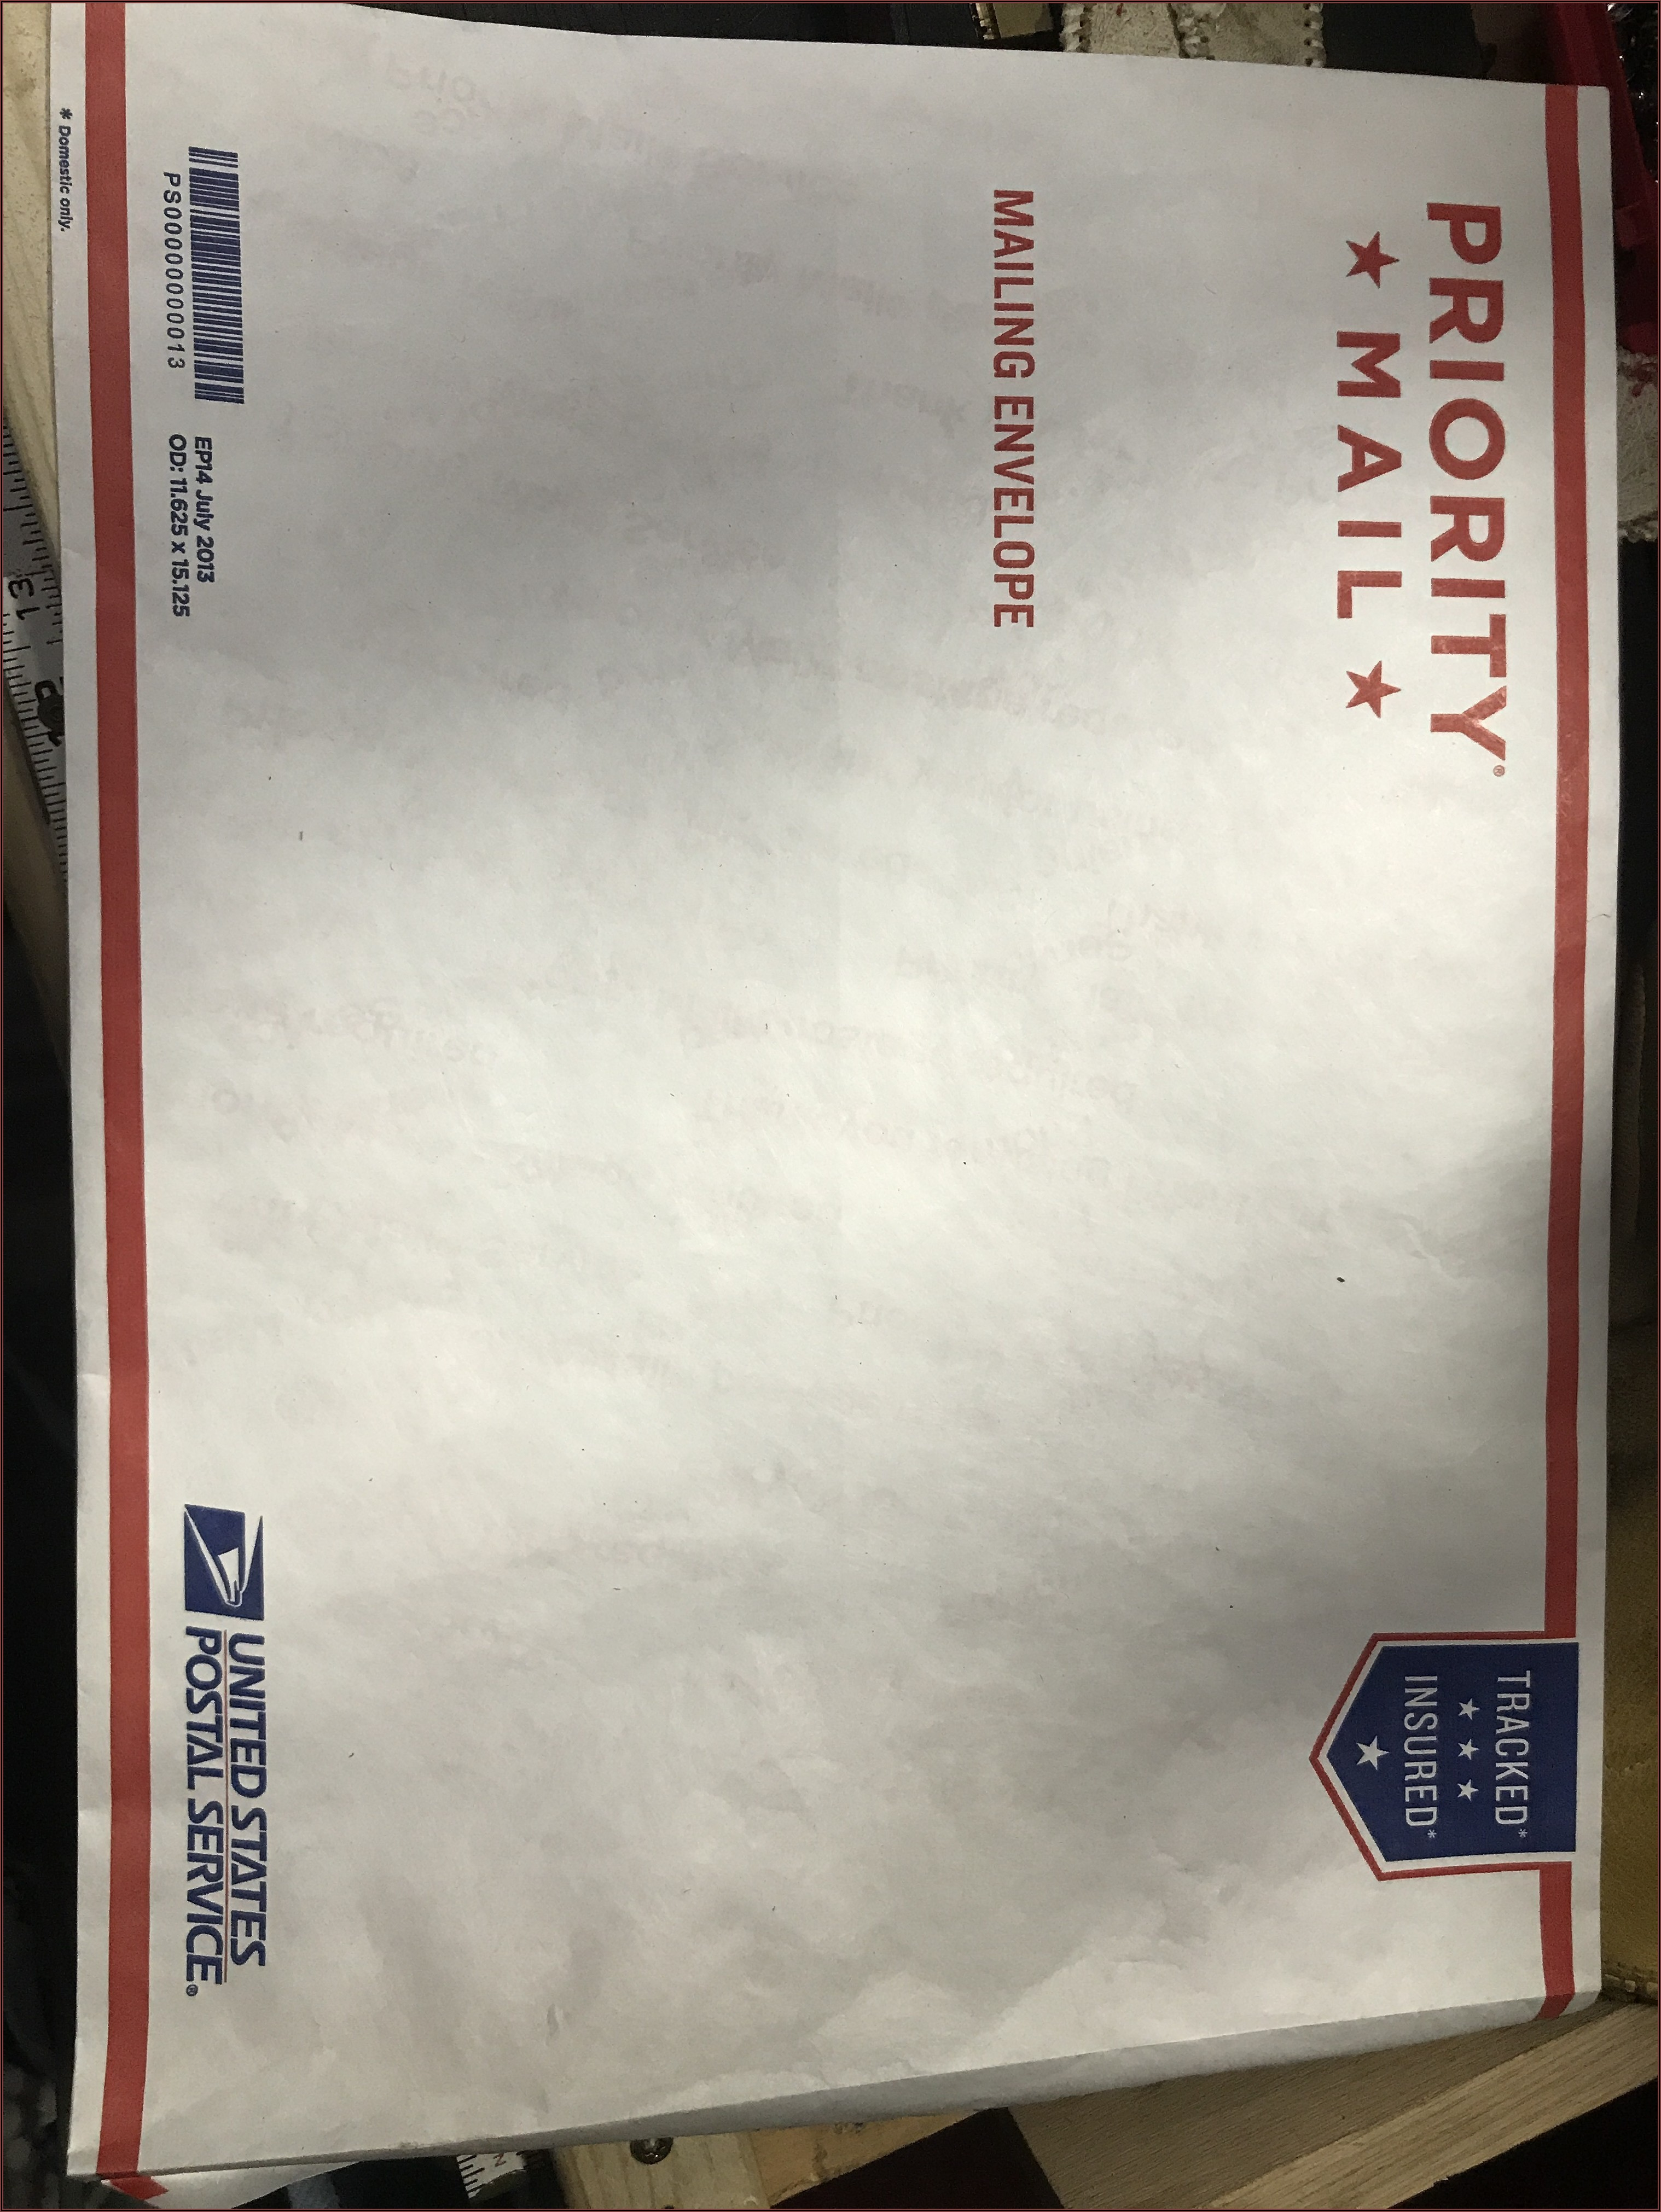 Usps Flat Rate Envelope Size 11.625 X 15.125